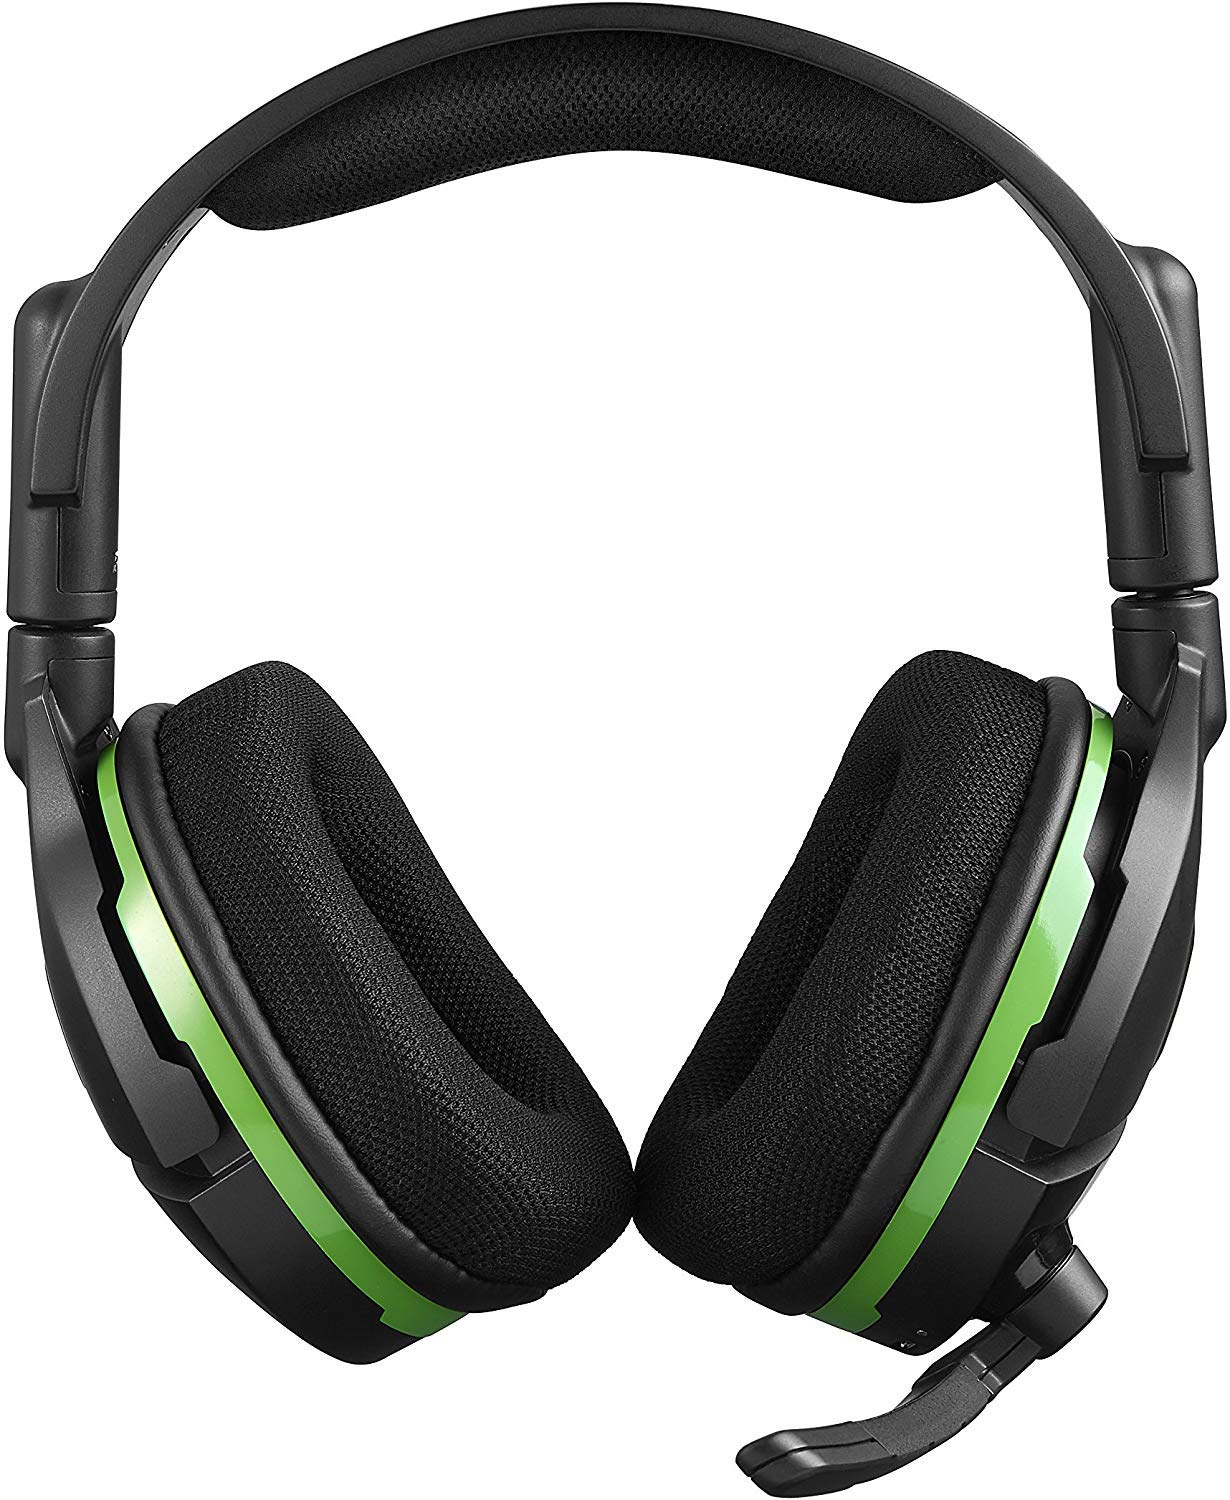 Amazon.com: Turtle Beach Stealth 600 Wireless Surround Sound Gaming Headset  for Xbox One: Video Games